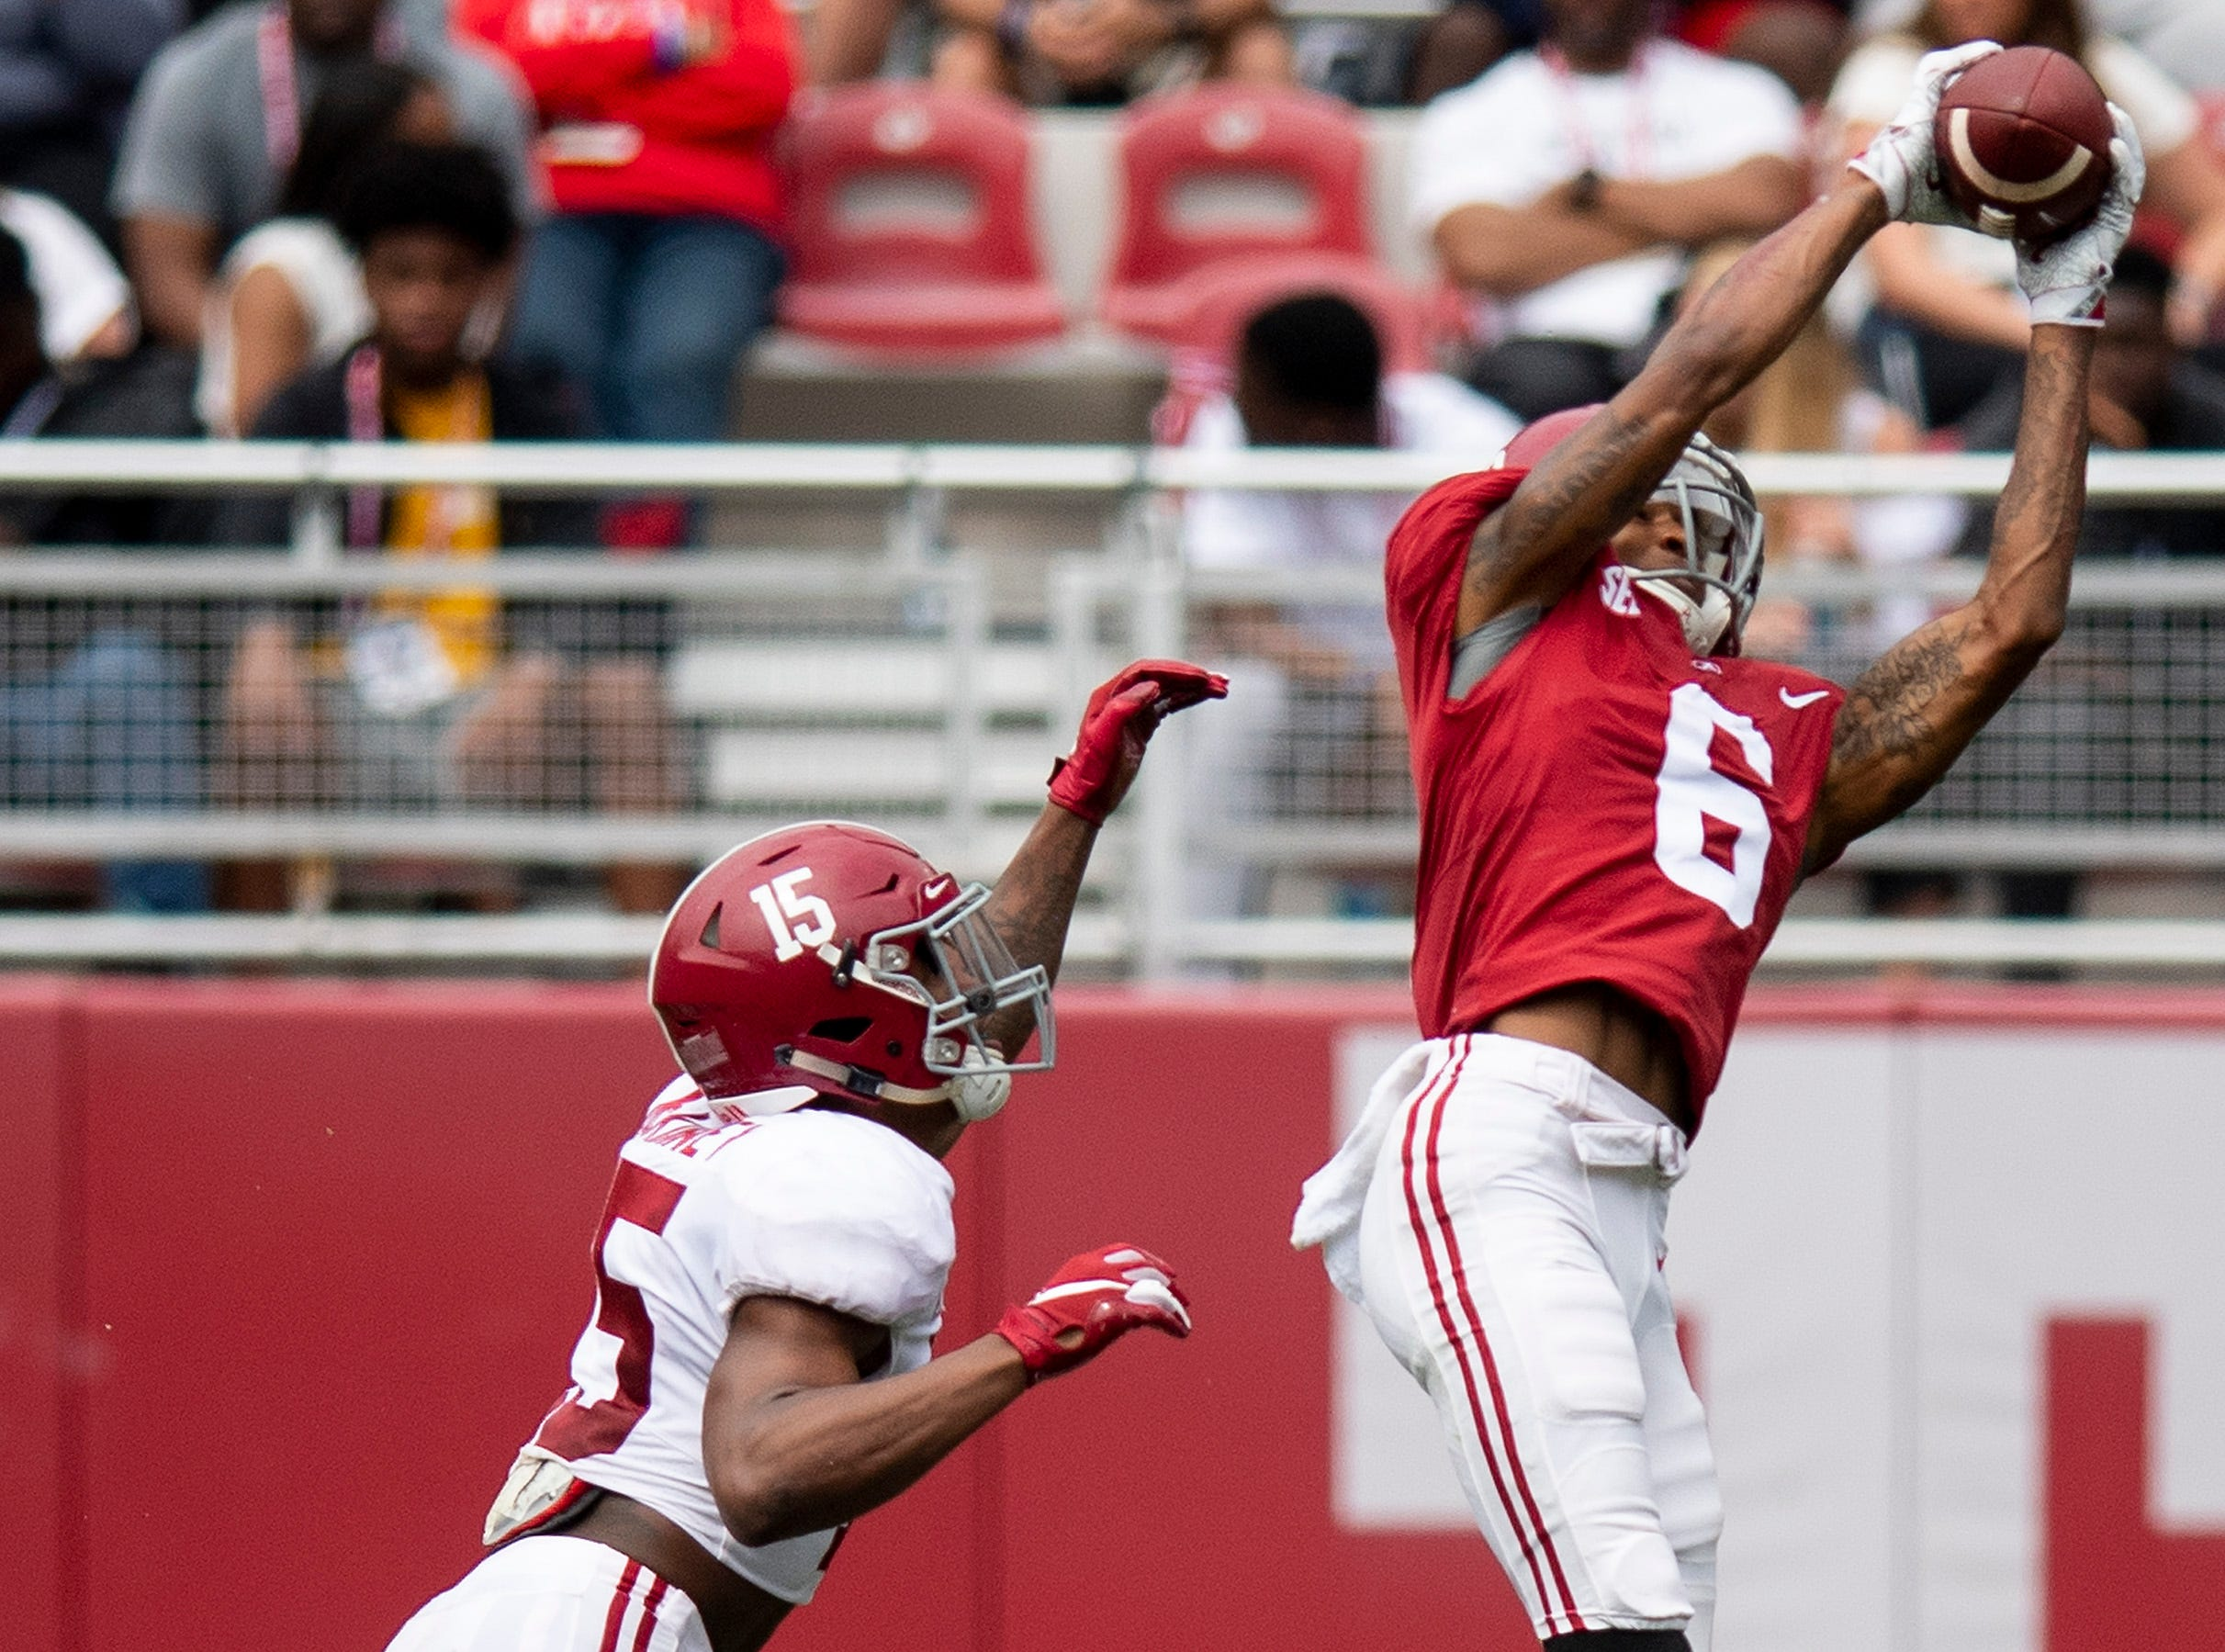 Wide receiver DeVonta Smith (6) catches a pass over defensive back Xavier McKinney (15) during second half action in the Alabama A-Day spring football scrimmage game at Bryant Denny Stadium in Tuscaloosa, Ala., on Saturday April 13, 2019.